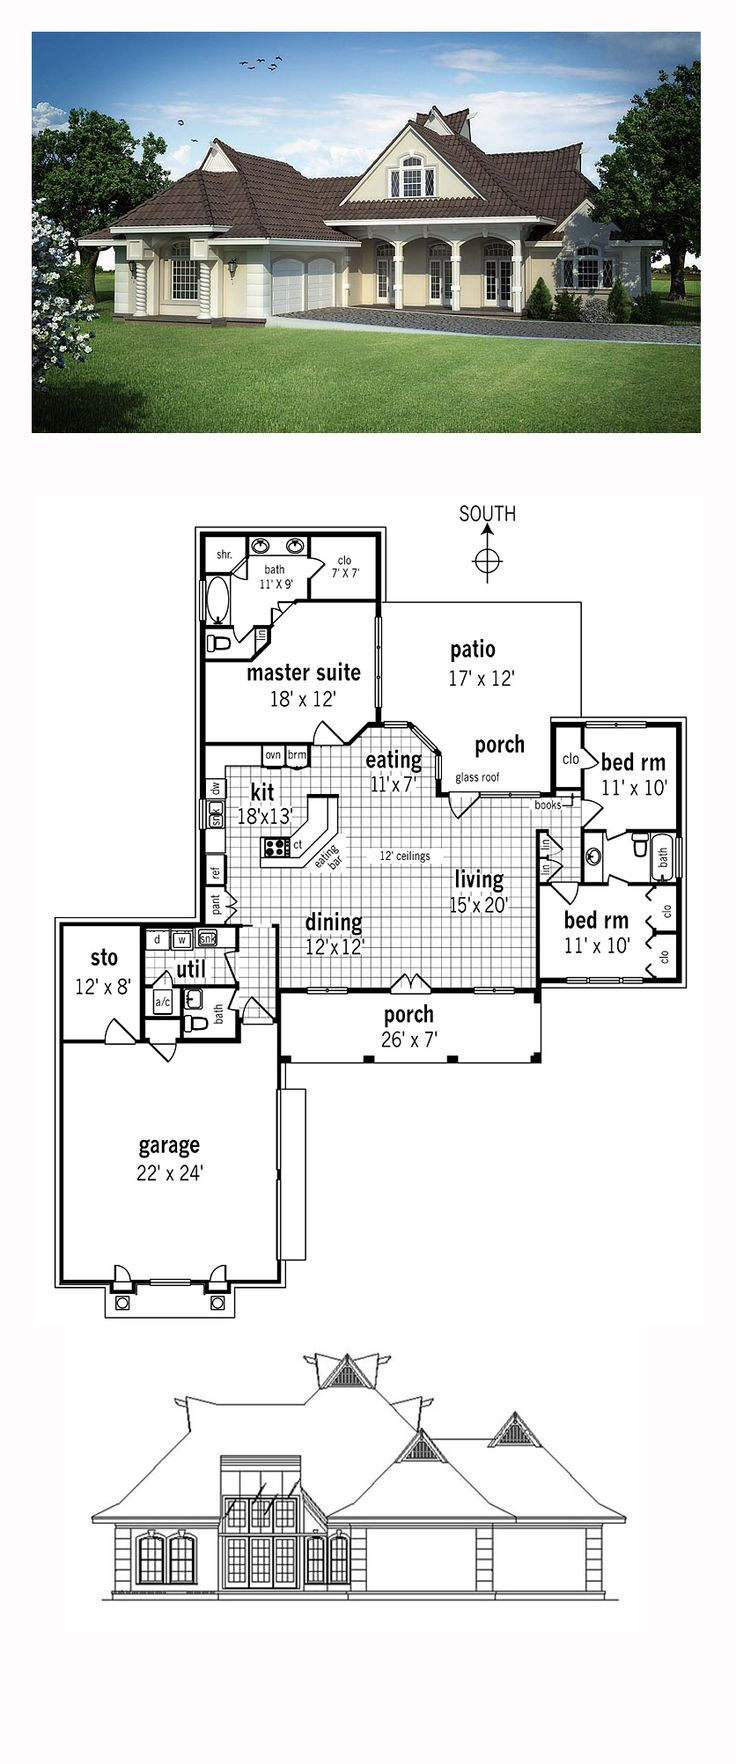 1000 images about house plans 1500 1800 sq ft on for 7x11 bathroom layouts